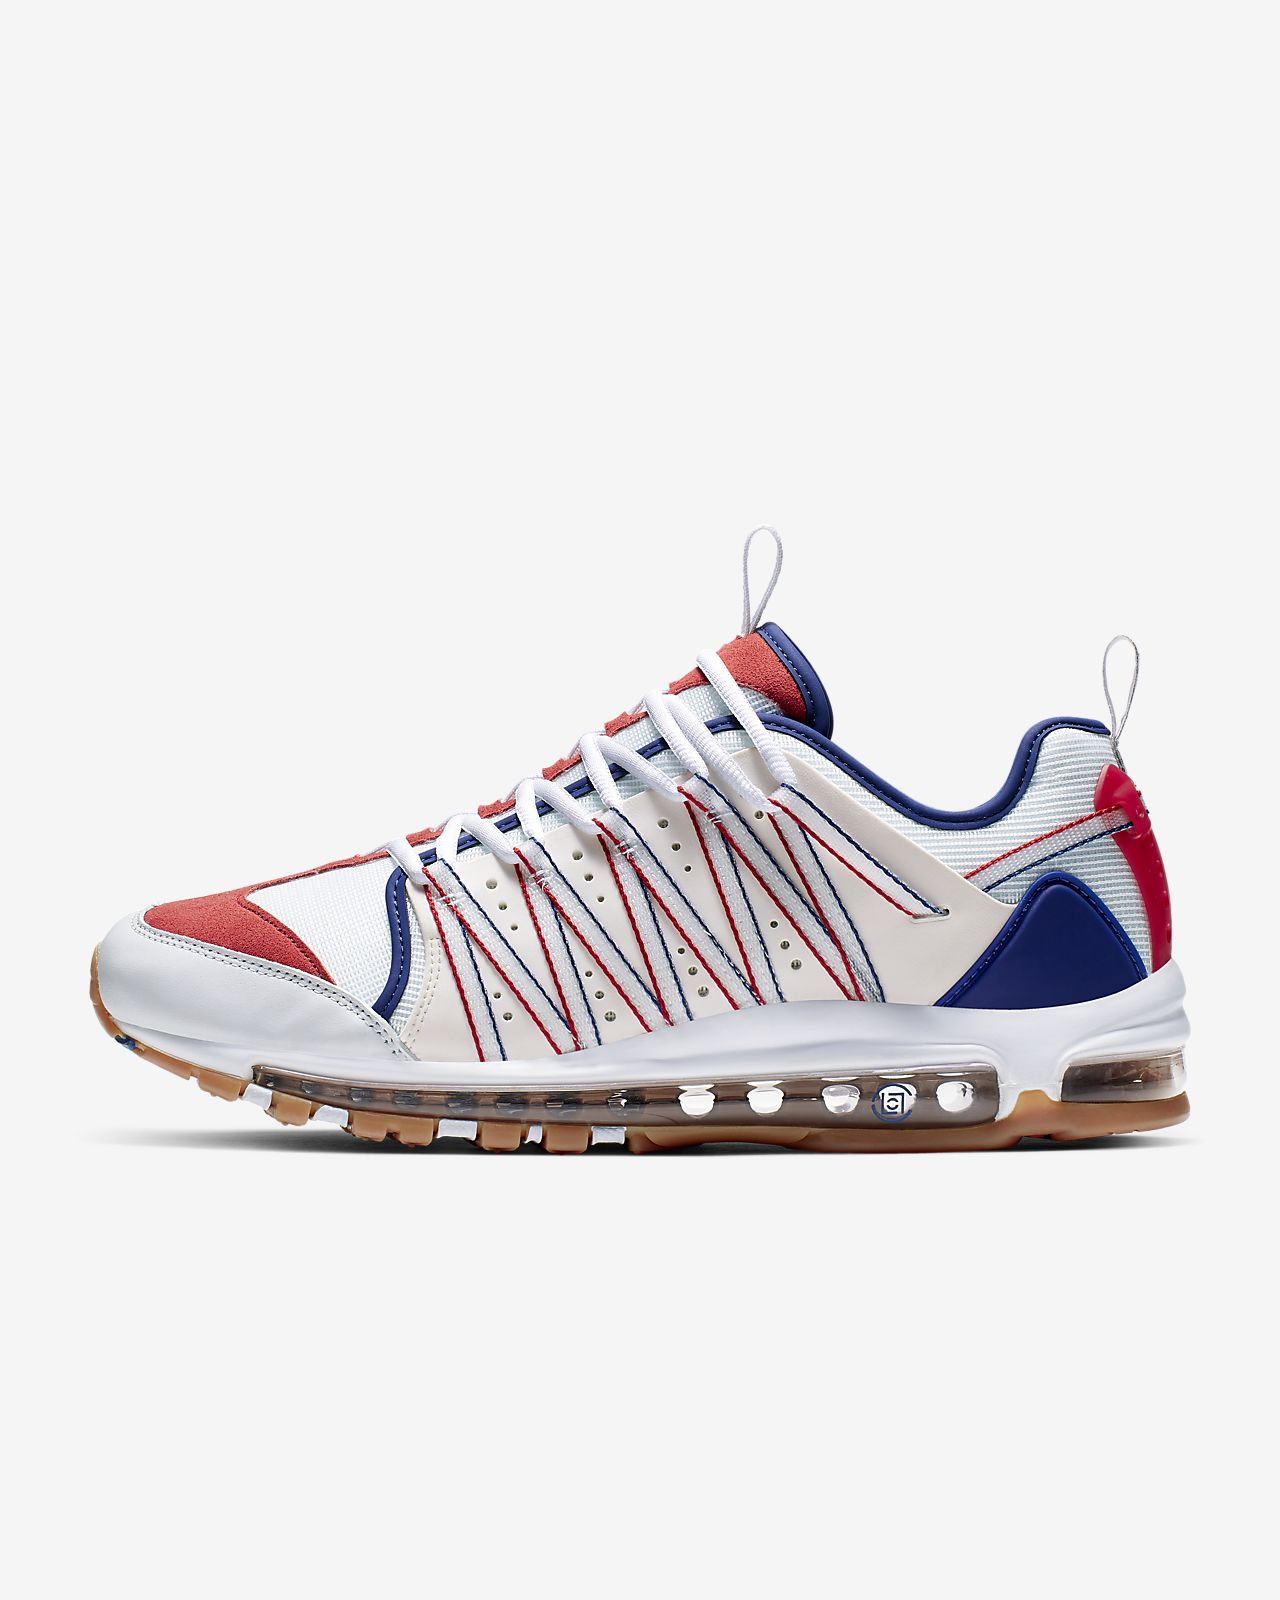 Nike Air Max 97 / Haven / Clot 男子运动鞋